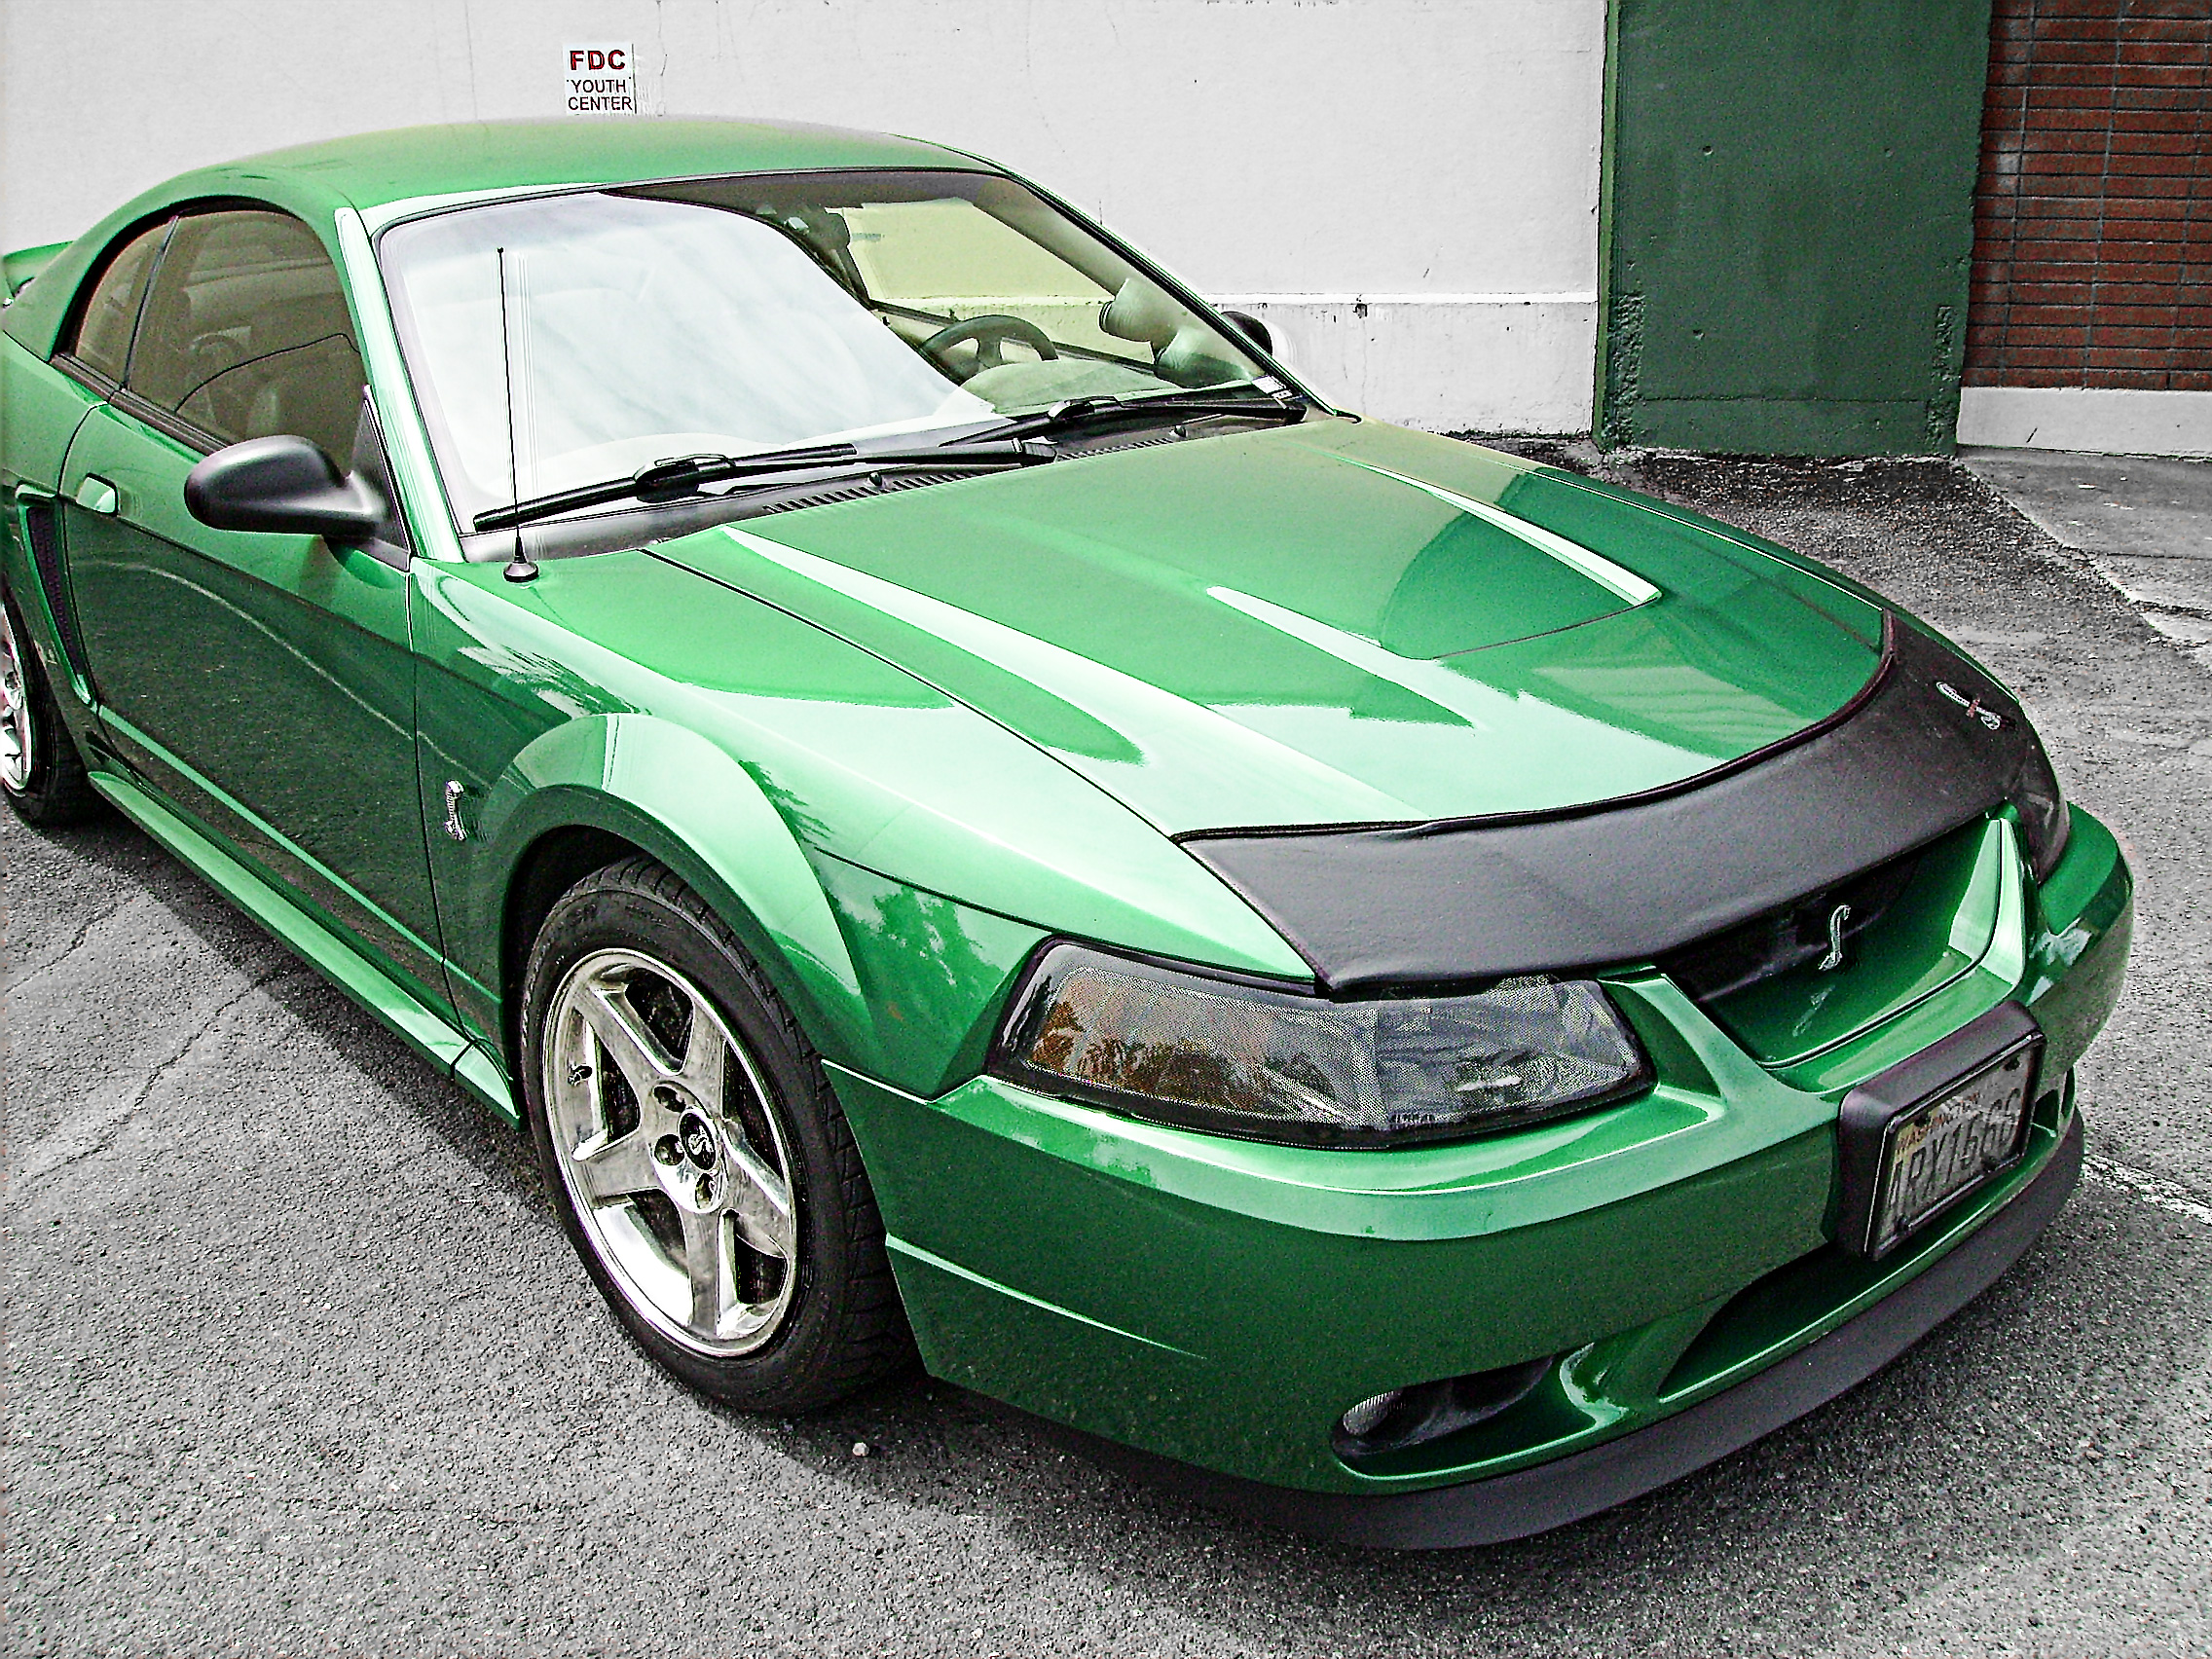 The Ford Motor Company Team Of Very Special Designers Had Fun Back In 1998 Designing And Developing All Knew 1999 Cobra Svt Model Mustang